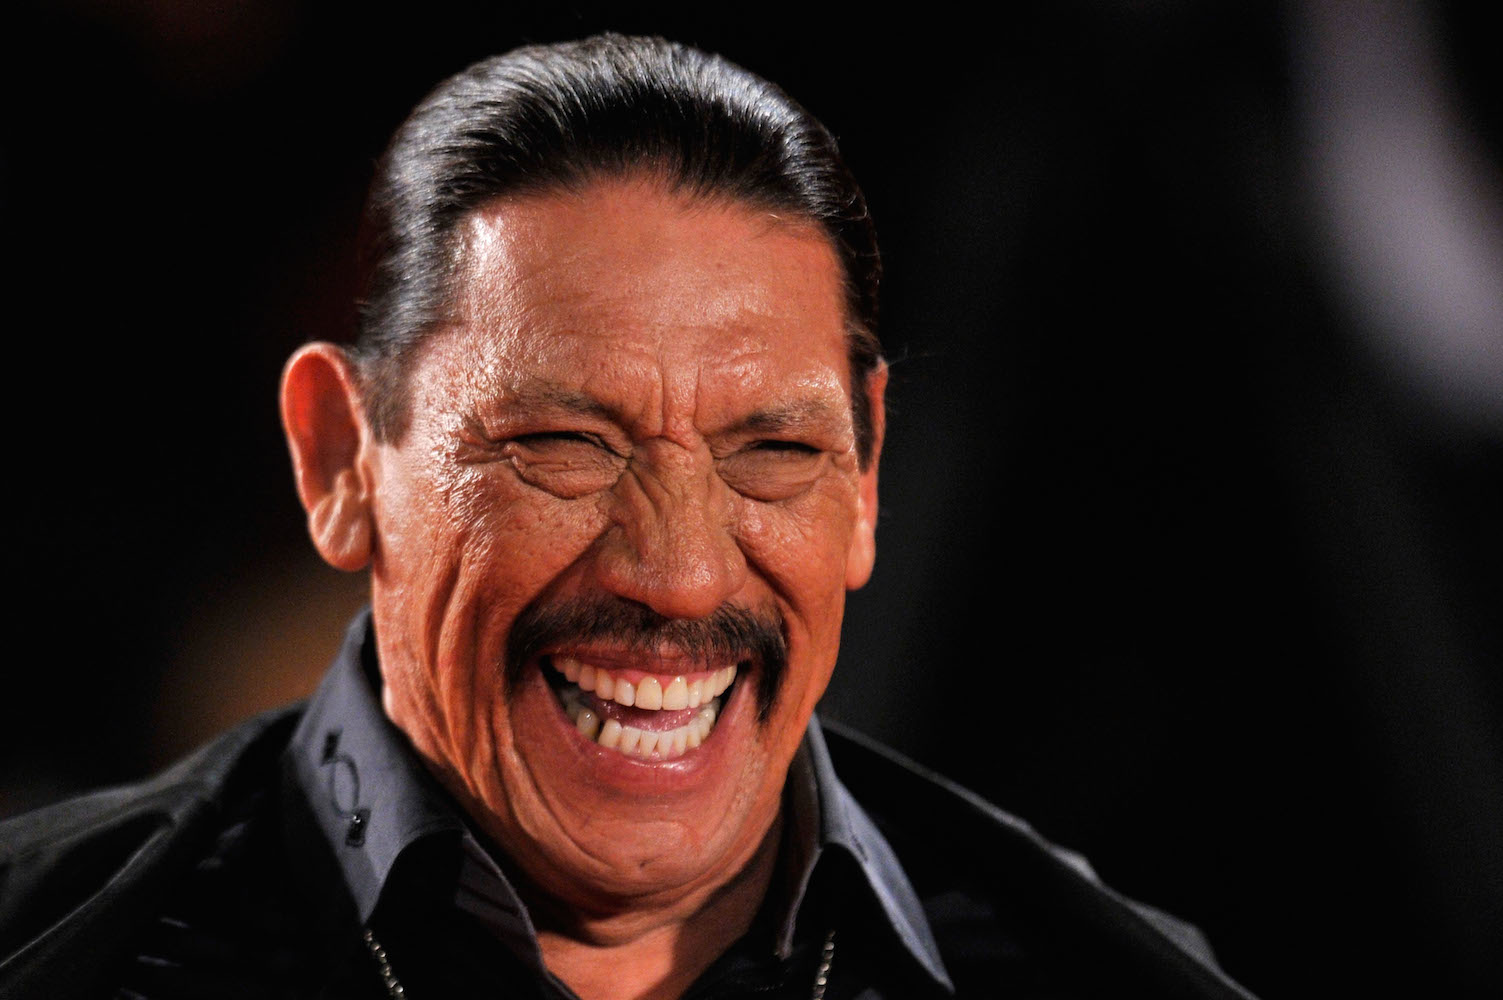 Danny Trejo Developing Sitcom Inspired by His Real-Life Journey from Inmate to Restaurant Owner